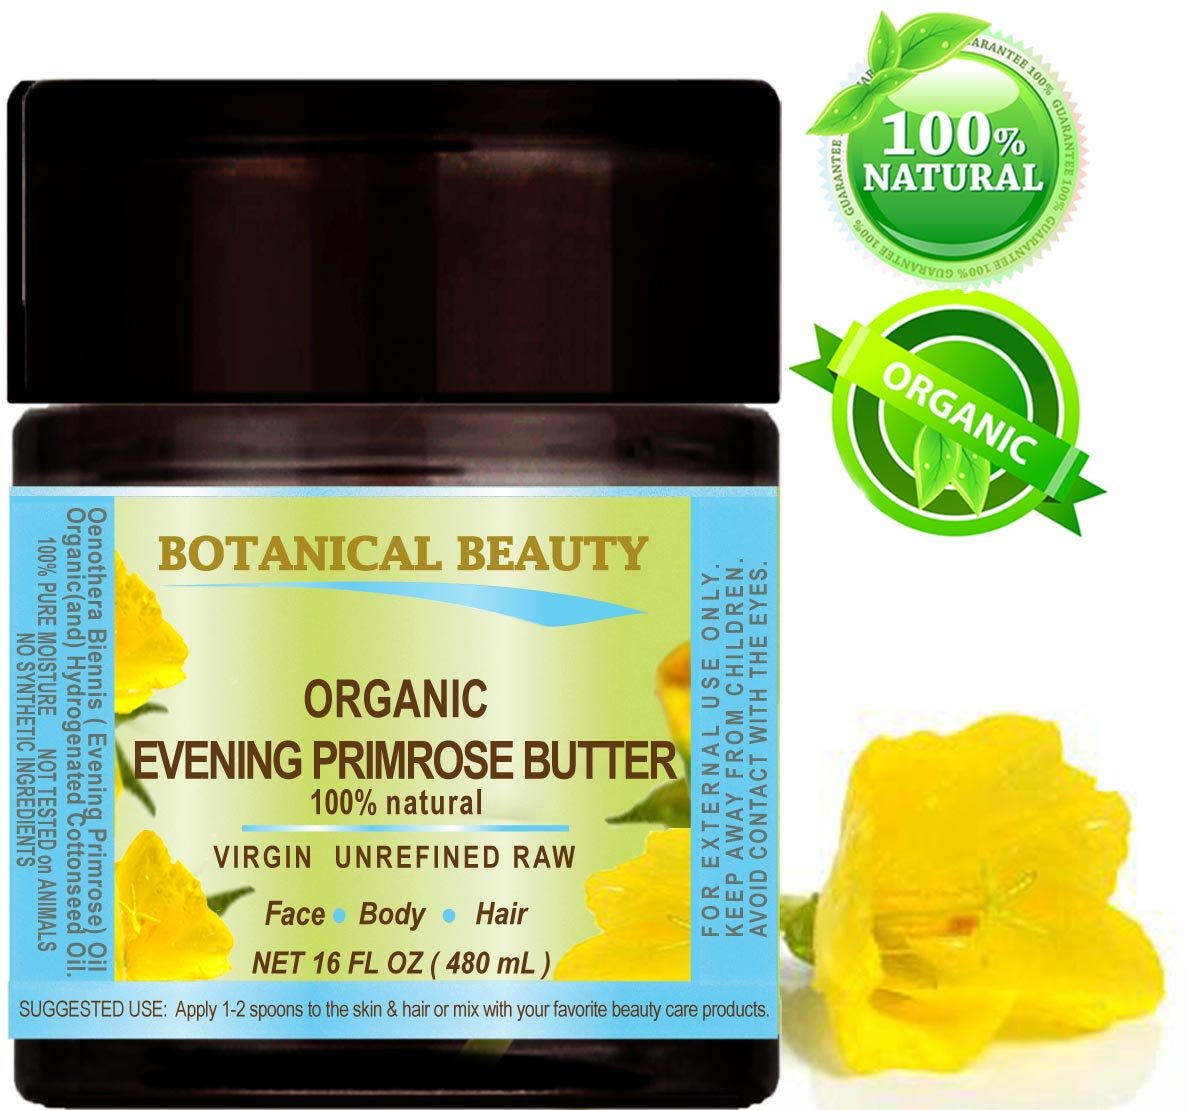 ORGANIC PRIMROSE OIL BUTTER. 100% Natural/RAW/VIRGIN/UNREFINED. 16 Fl oz - 480 ml. for FACE, BODY, HANDS, FEET, NAILS & HAIR and LIP CARE.